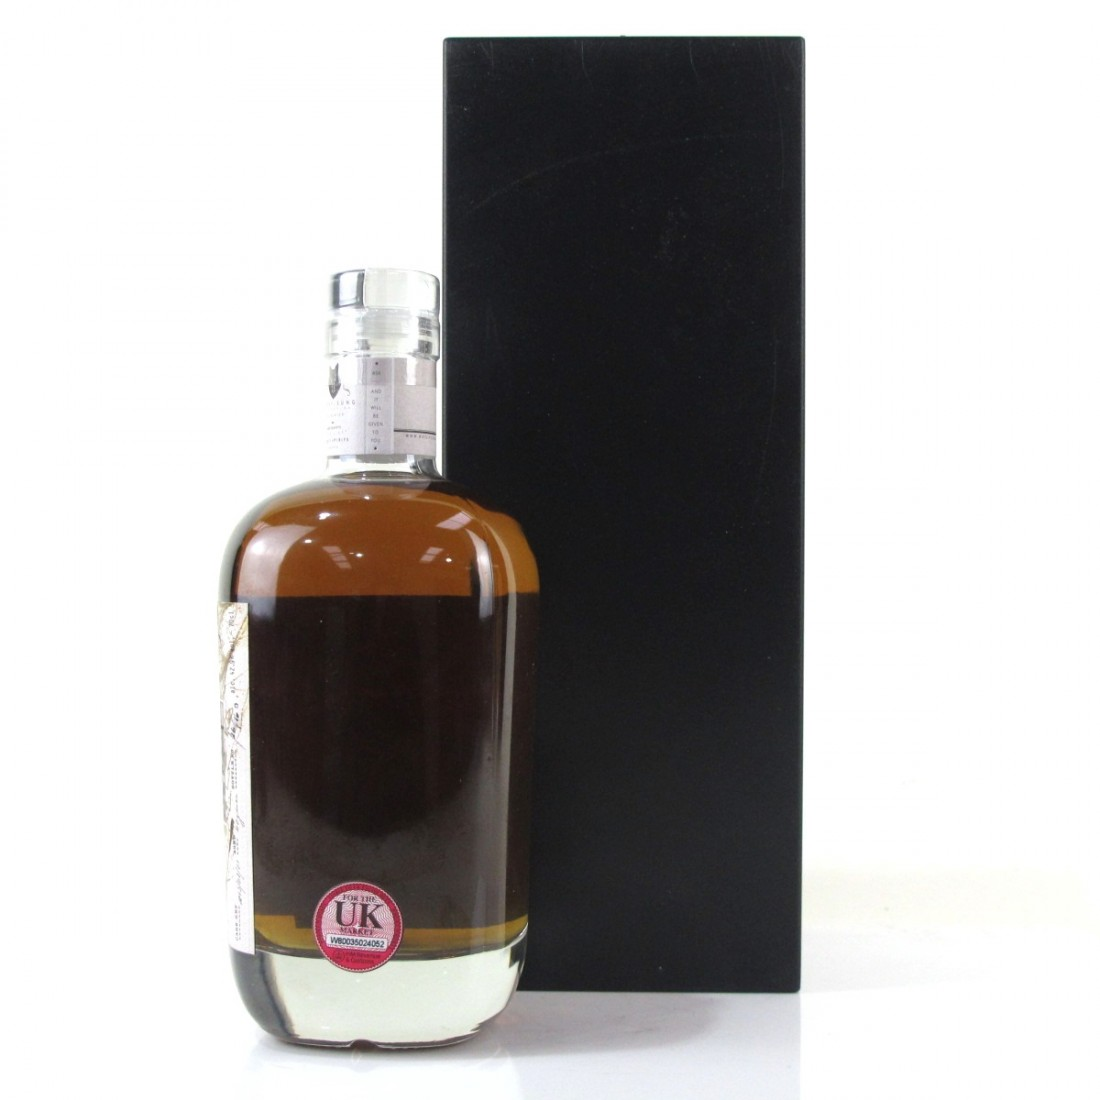 Glenglassaugh 1972 Woolf Sung 40 Year Old / The Hunter - Charity Bottle